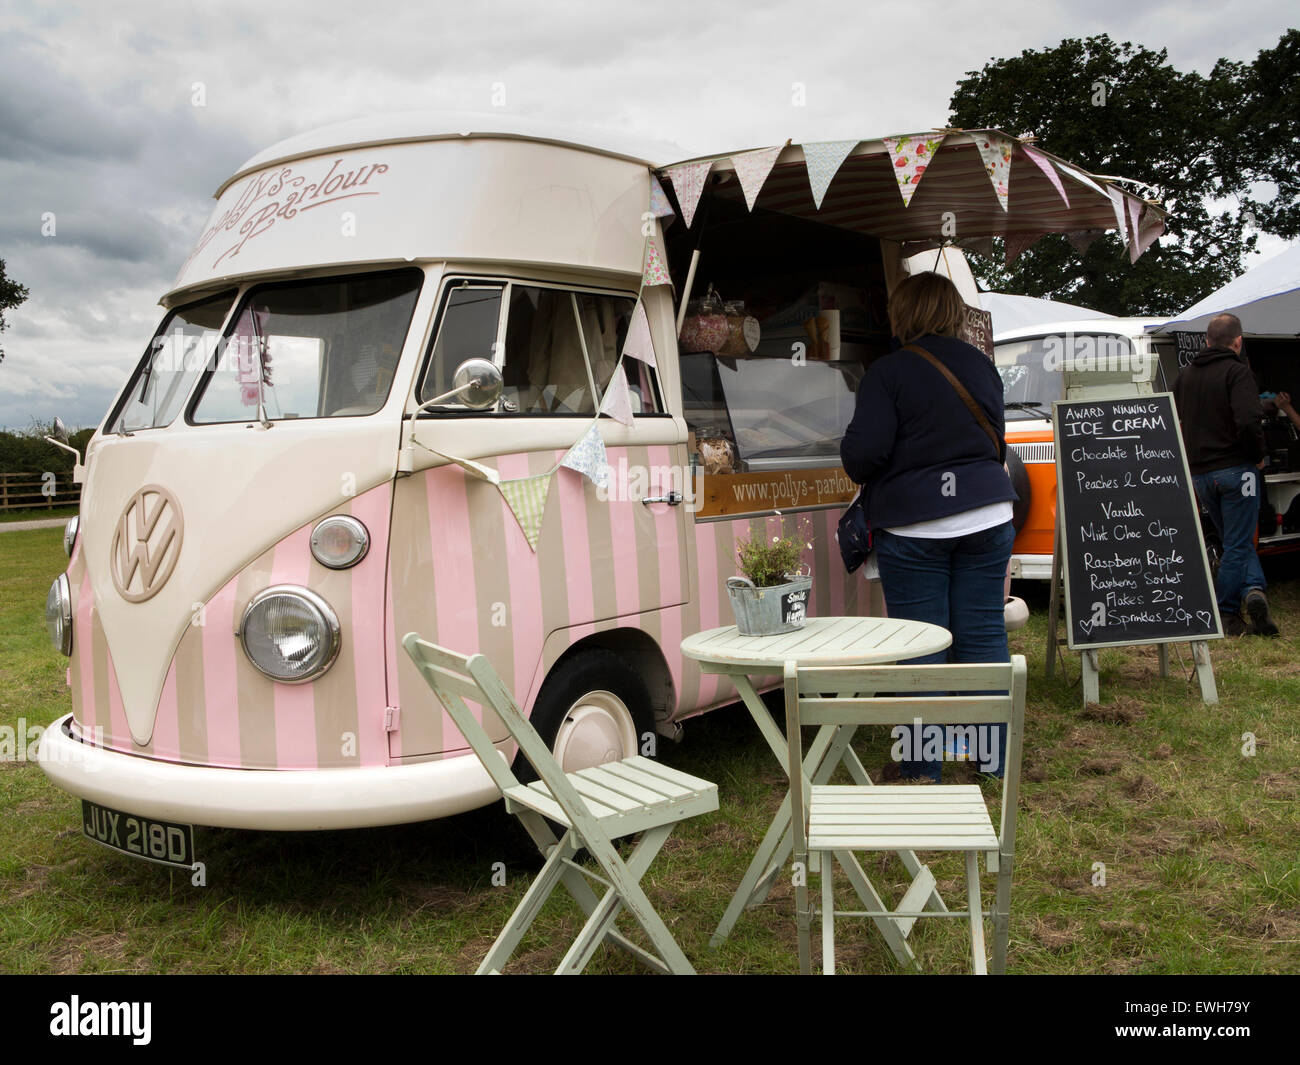 UK, England, Cheshire, Tabley, Cheshire Showground, Decorative Home & Salvage Show, Polly's Parlour mobile - Stock Image